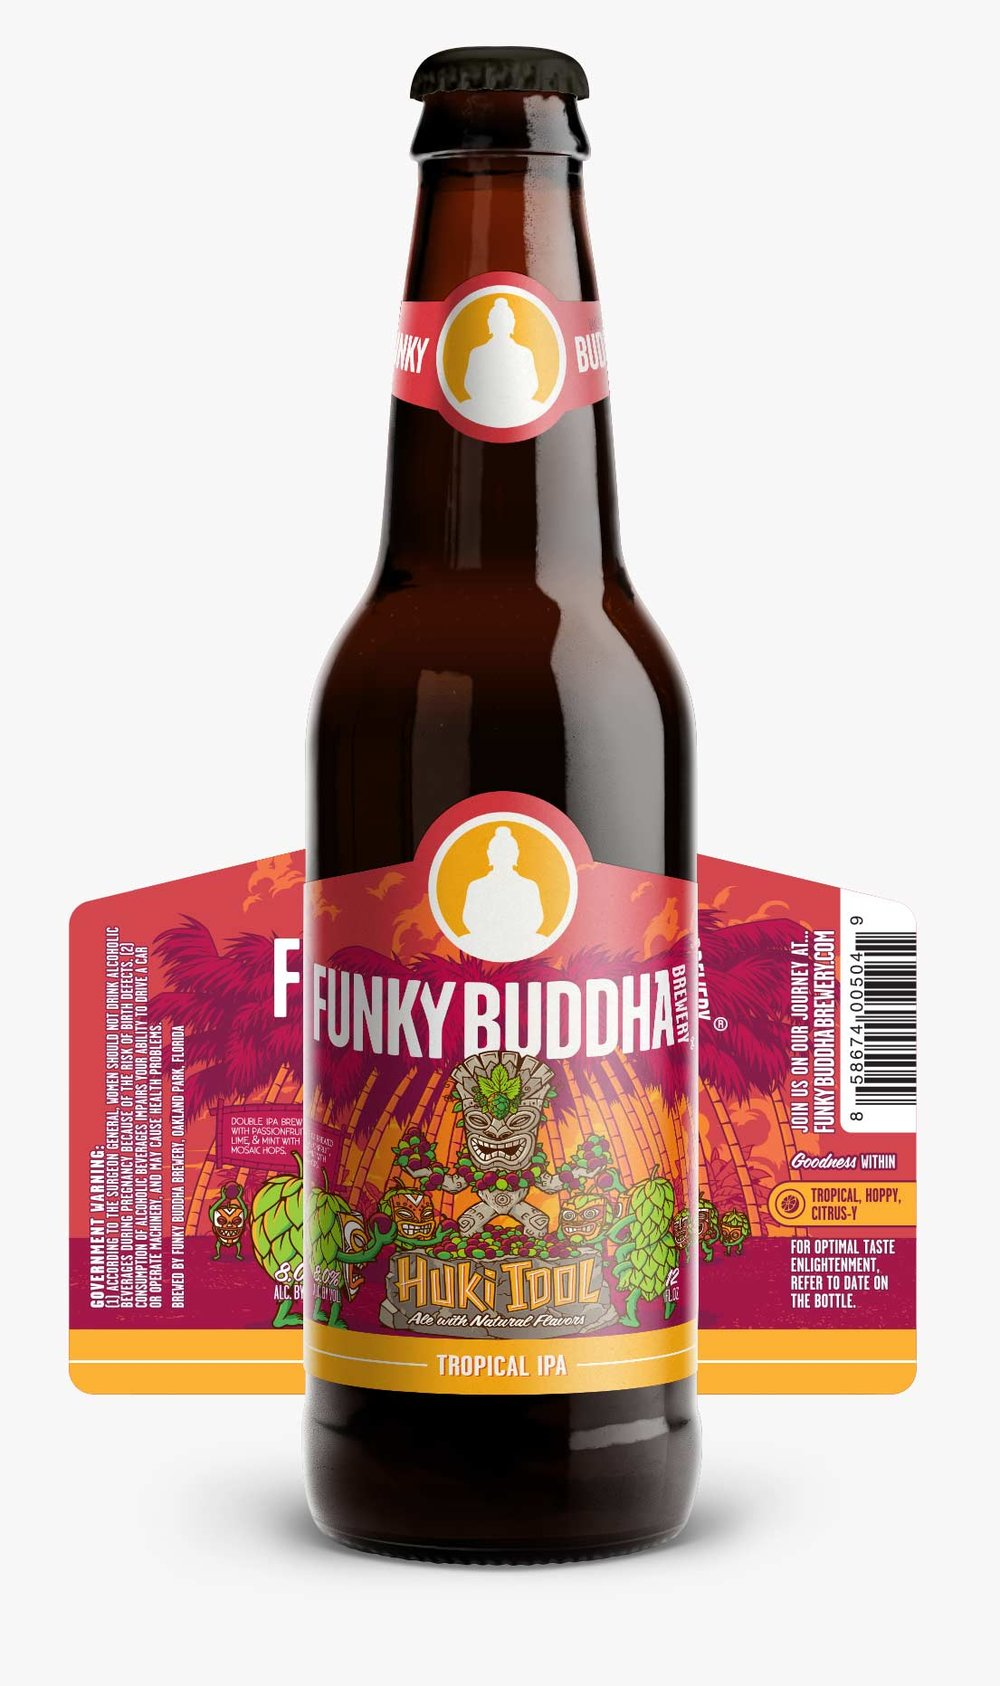 Funky Buddha Brewery Huki Idol Tropical IPA bottle label and bottle carrier design and artwork.